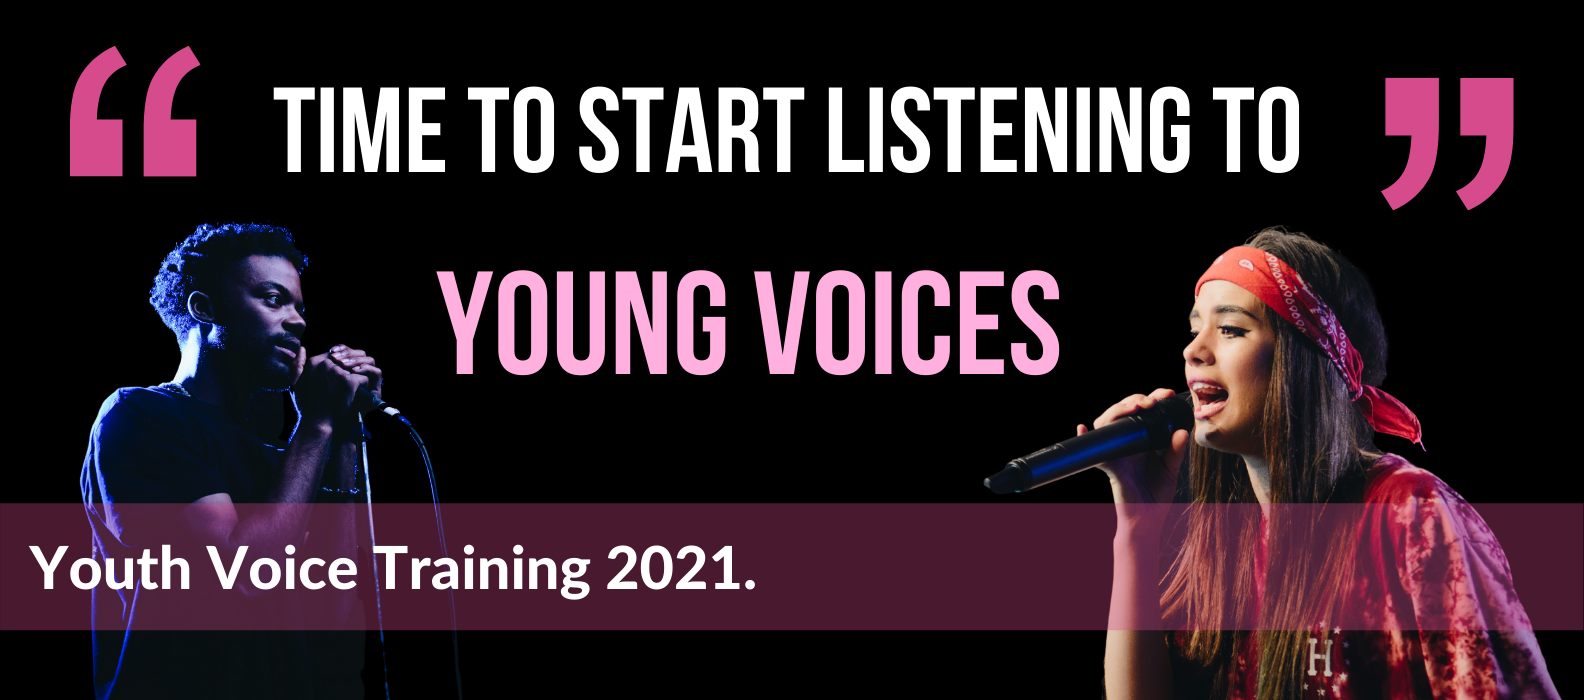 Youth Voice Training December 2021